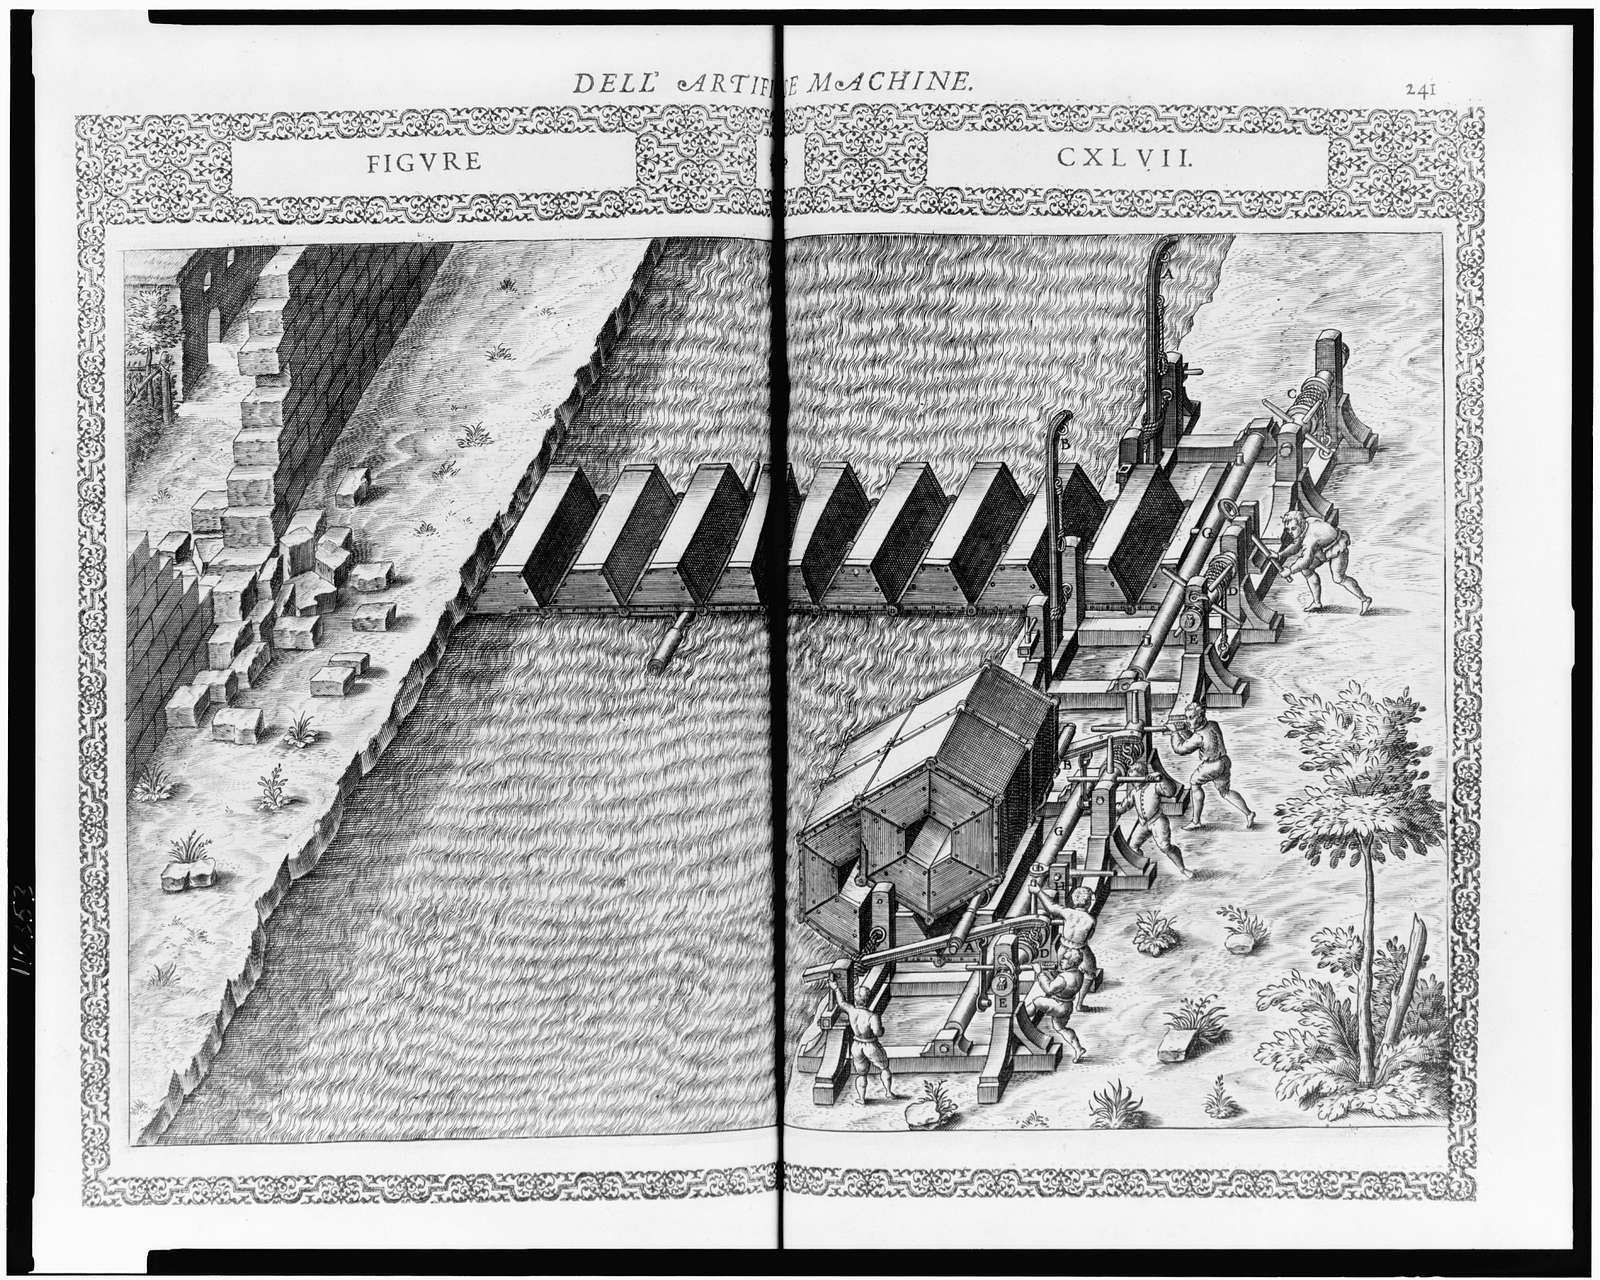 [Folding bridge - two views, top extended across moat, bottom folded prior to release; used by infantry during assault on fortress]